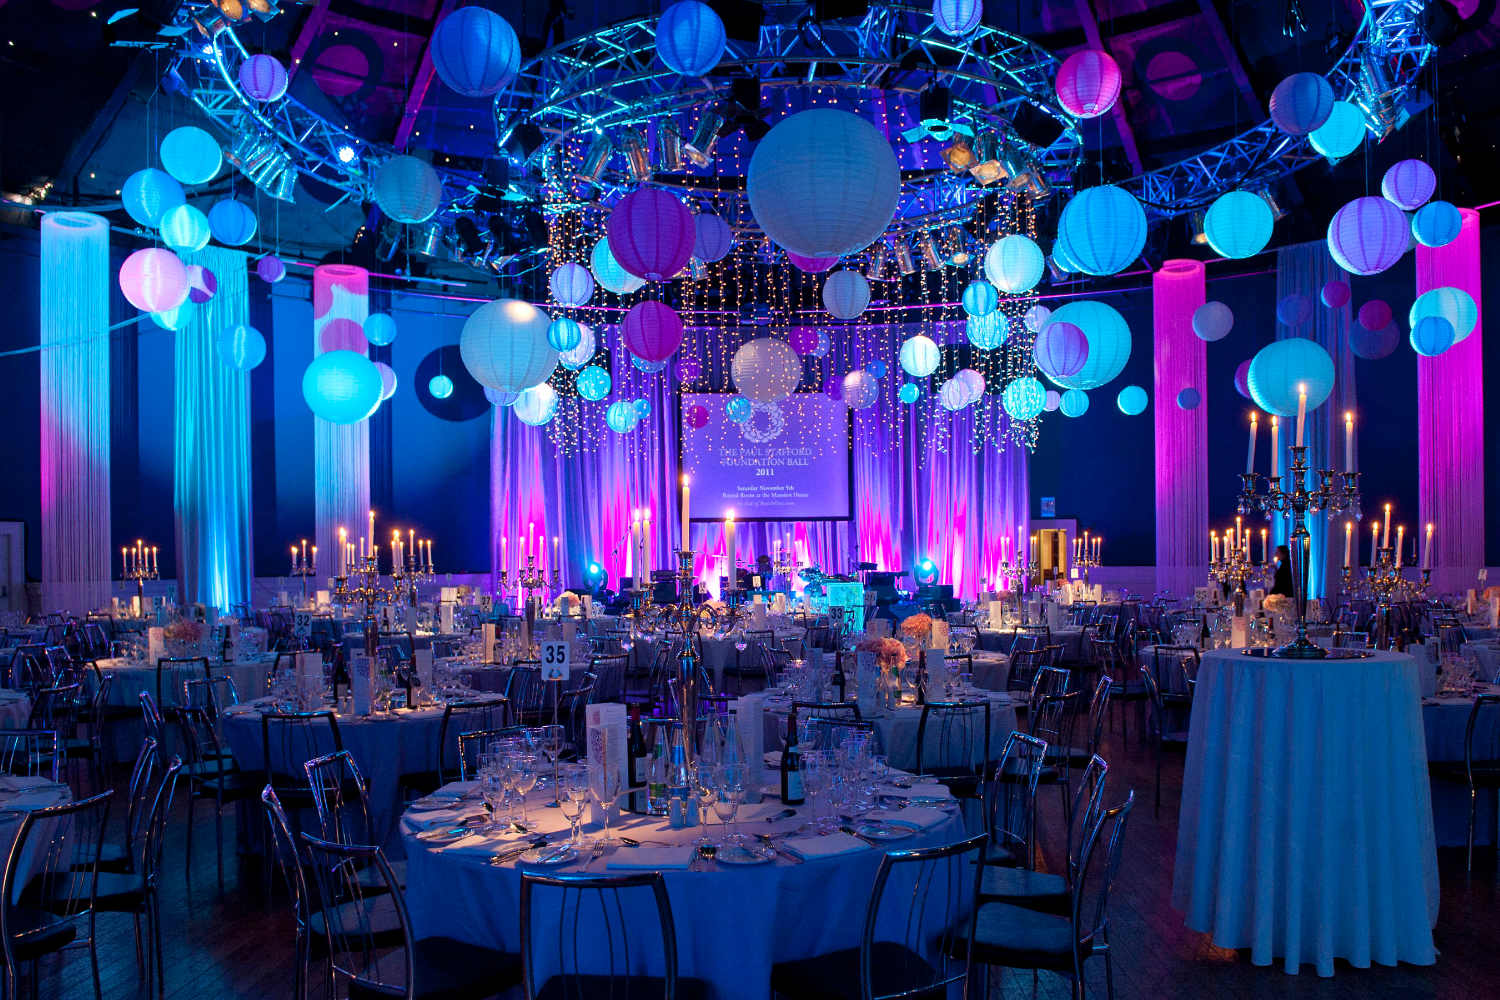 Party Planner Designs, Party Decor, Party Decorations Ireland